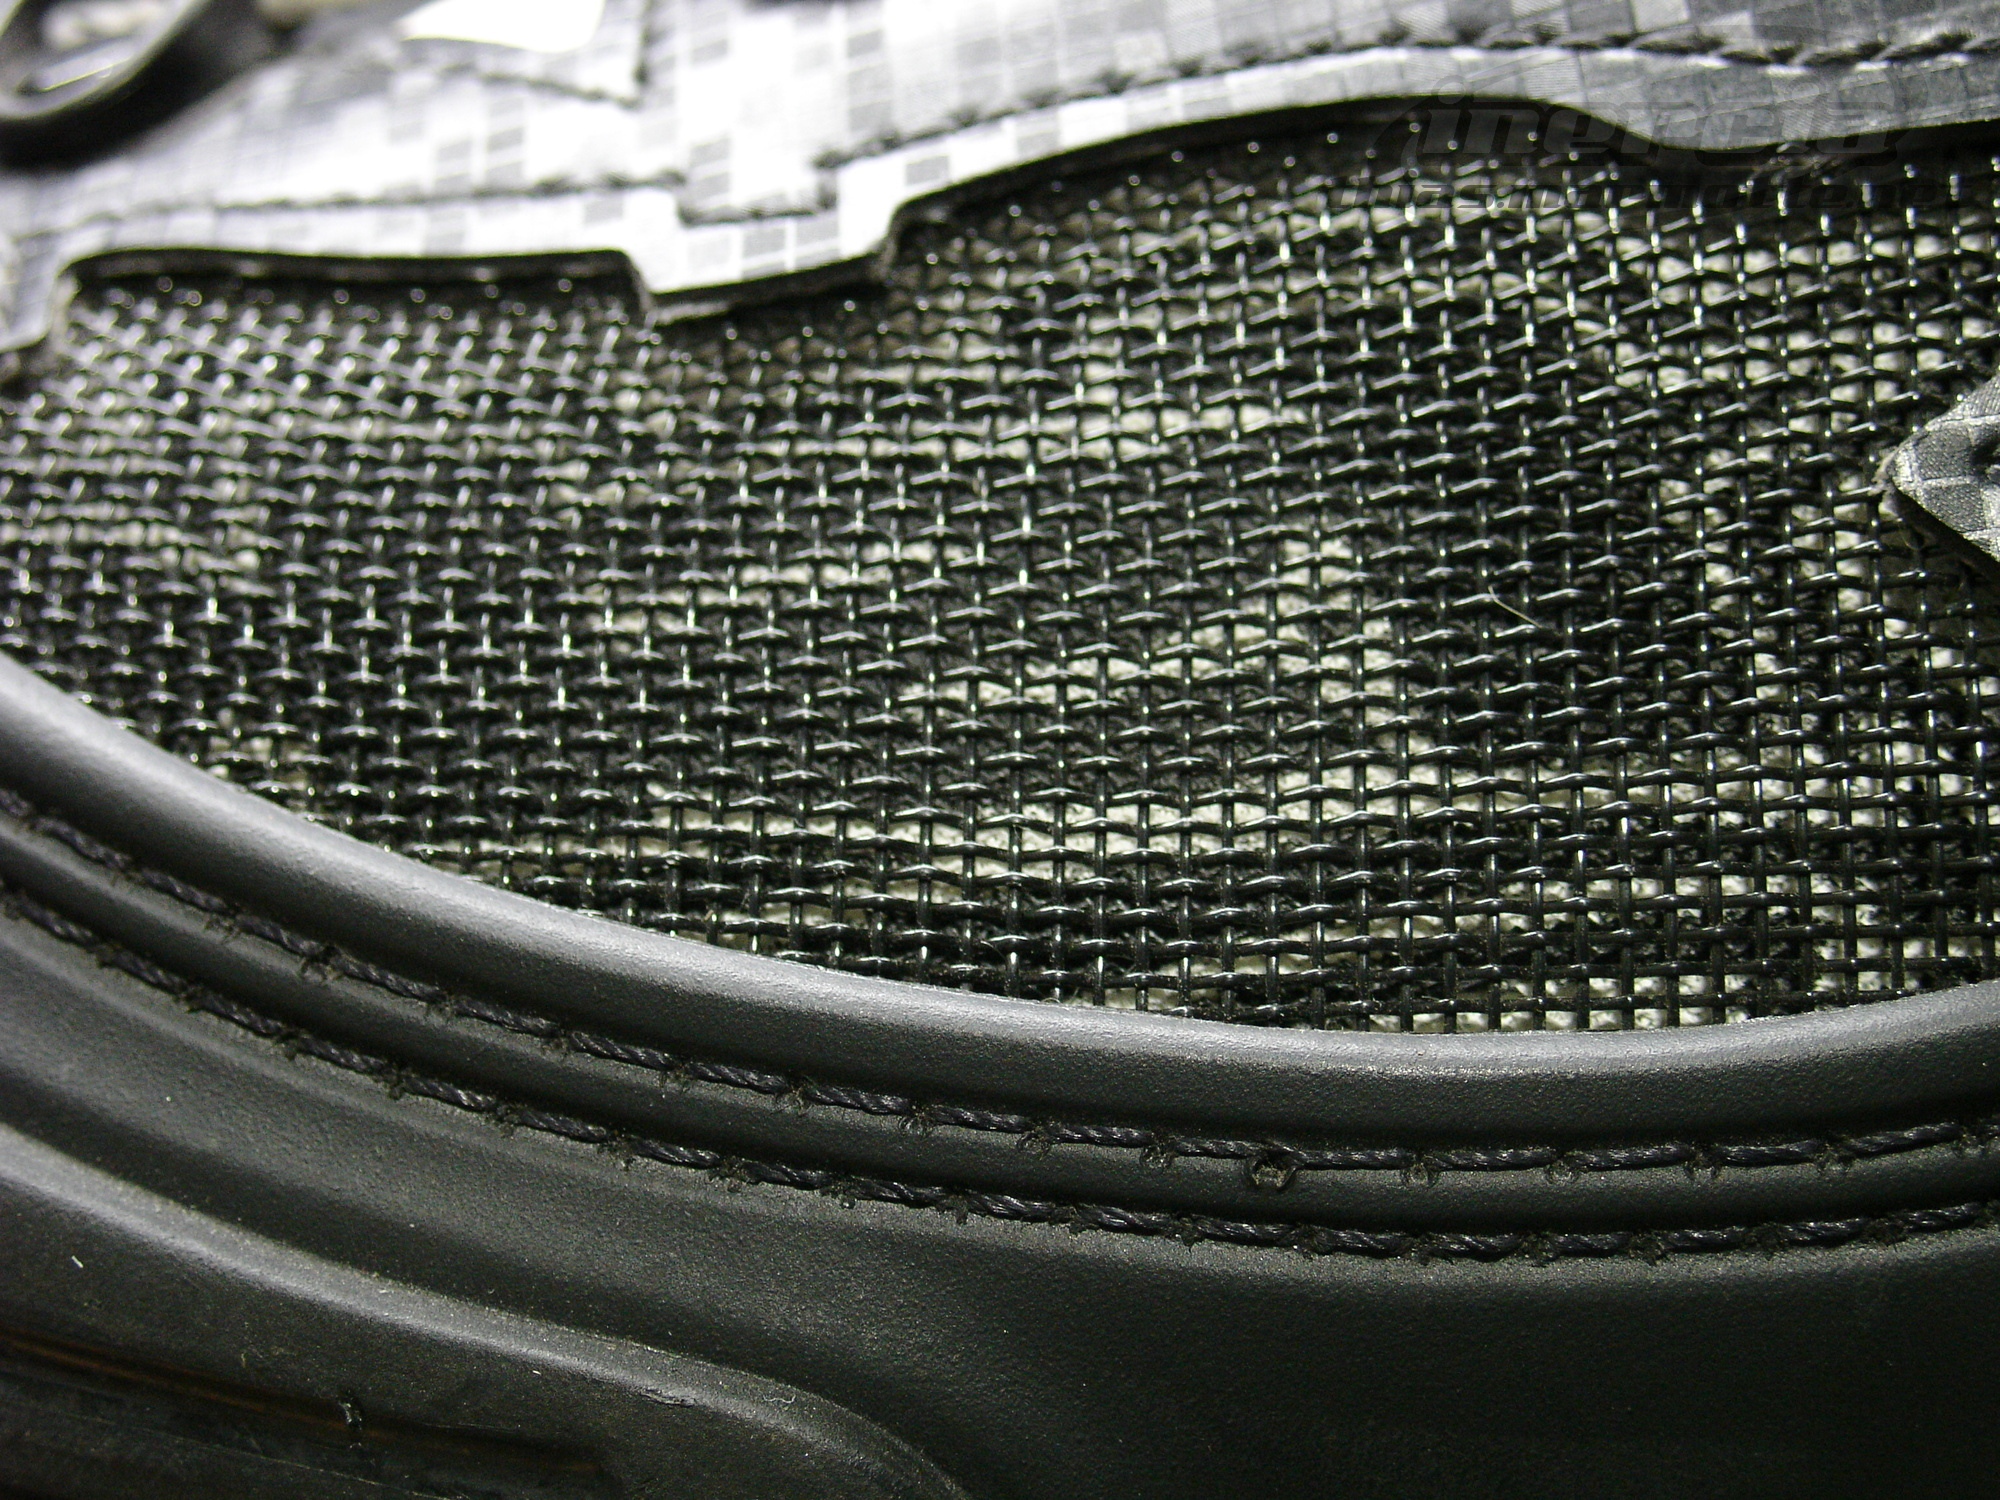 Boot see through to the liner decoration